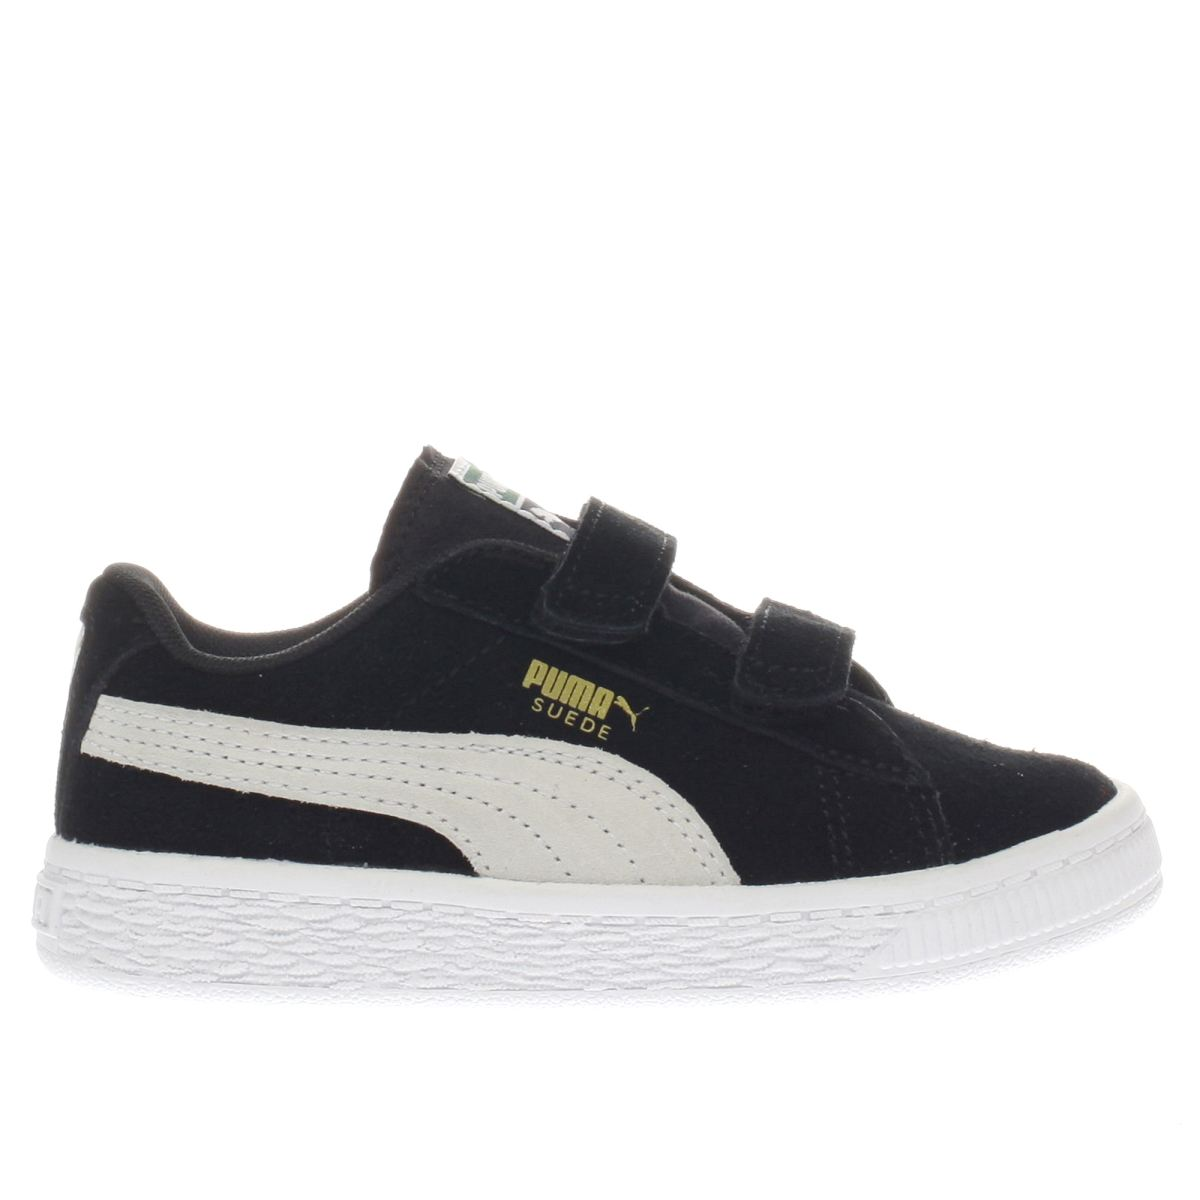 puma black & white suede classic Toddler Trainers